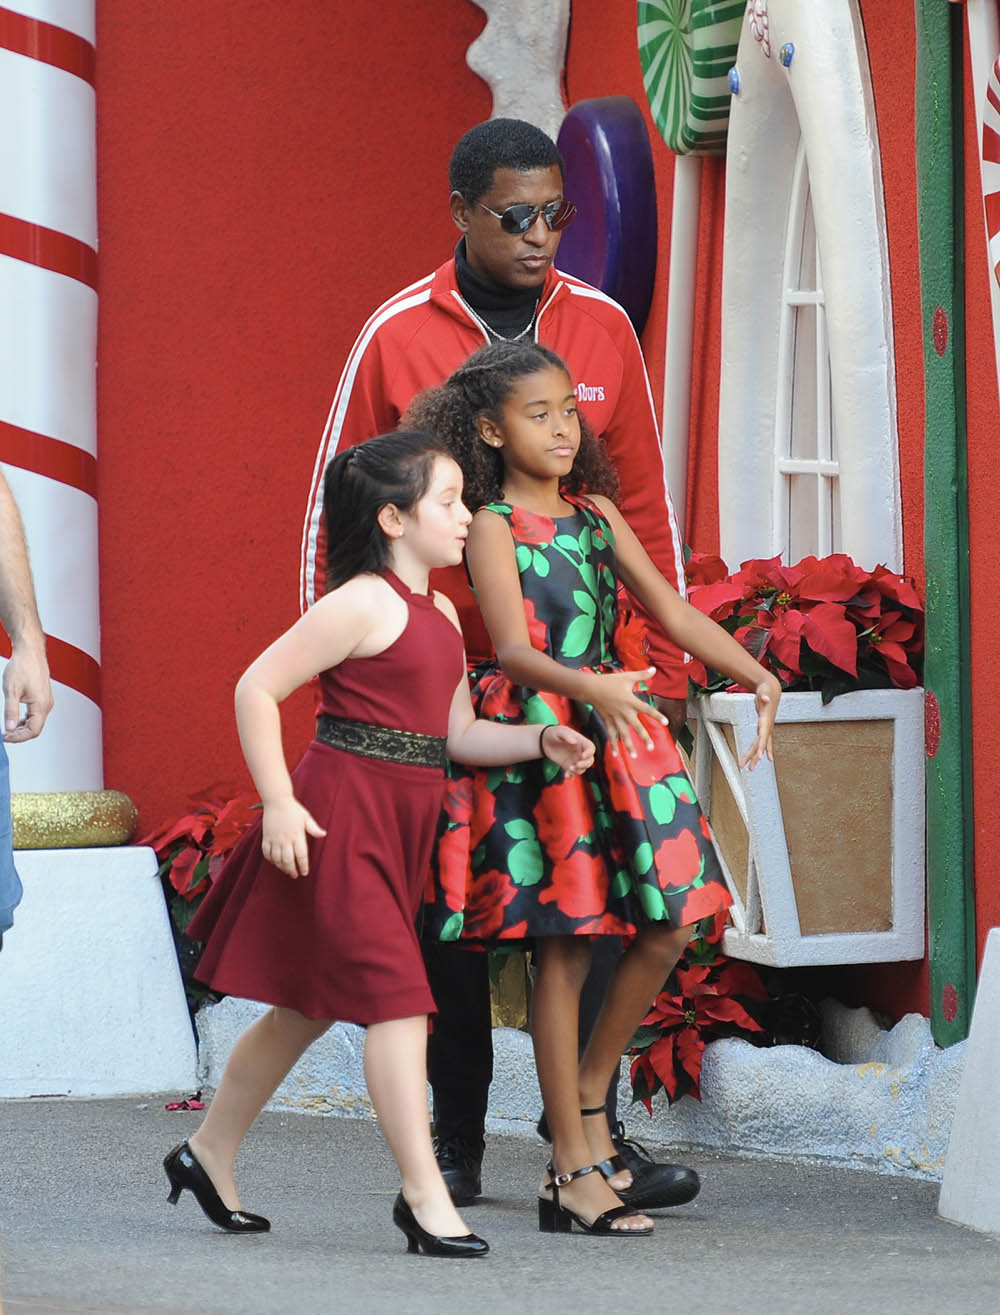 Singer Babyface and family get into the Christmas mood as they visit Santa Claus together (Photos)